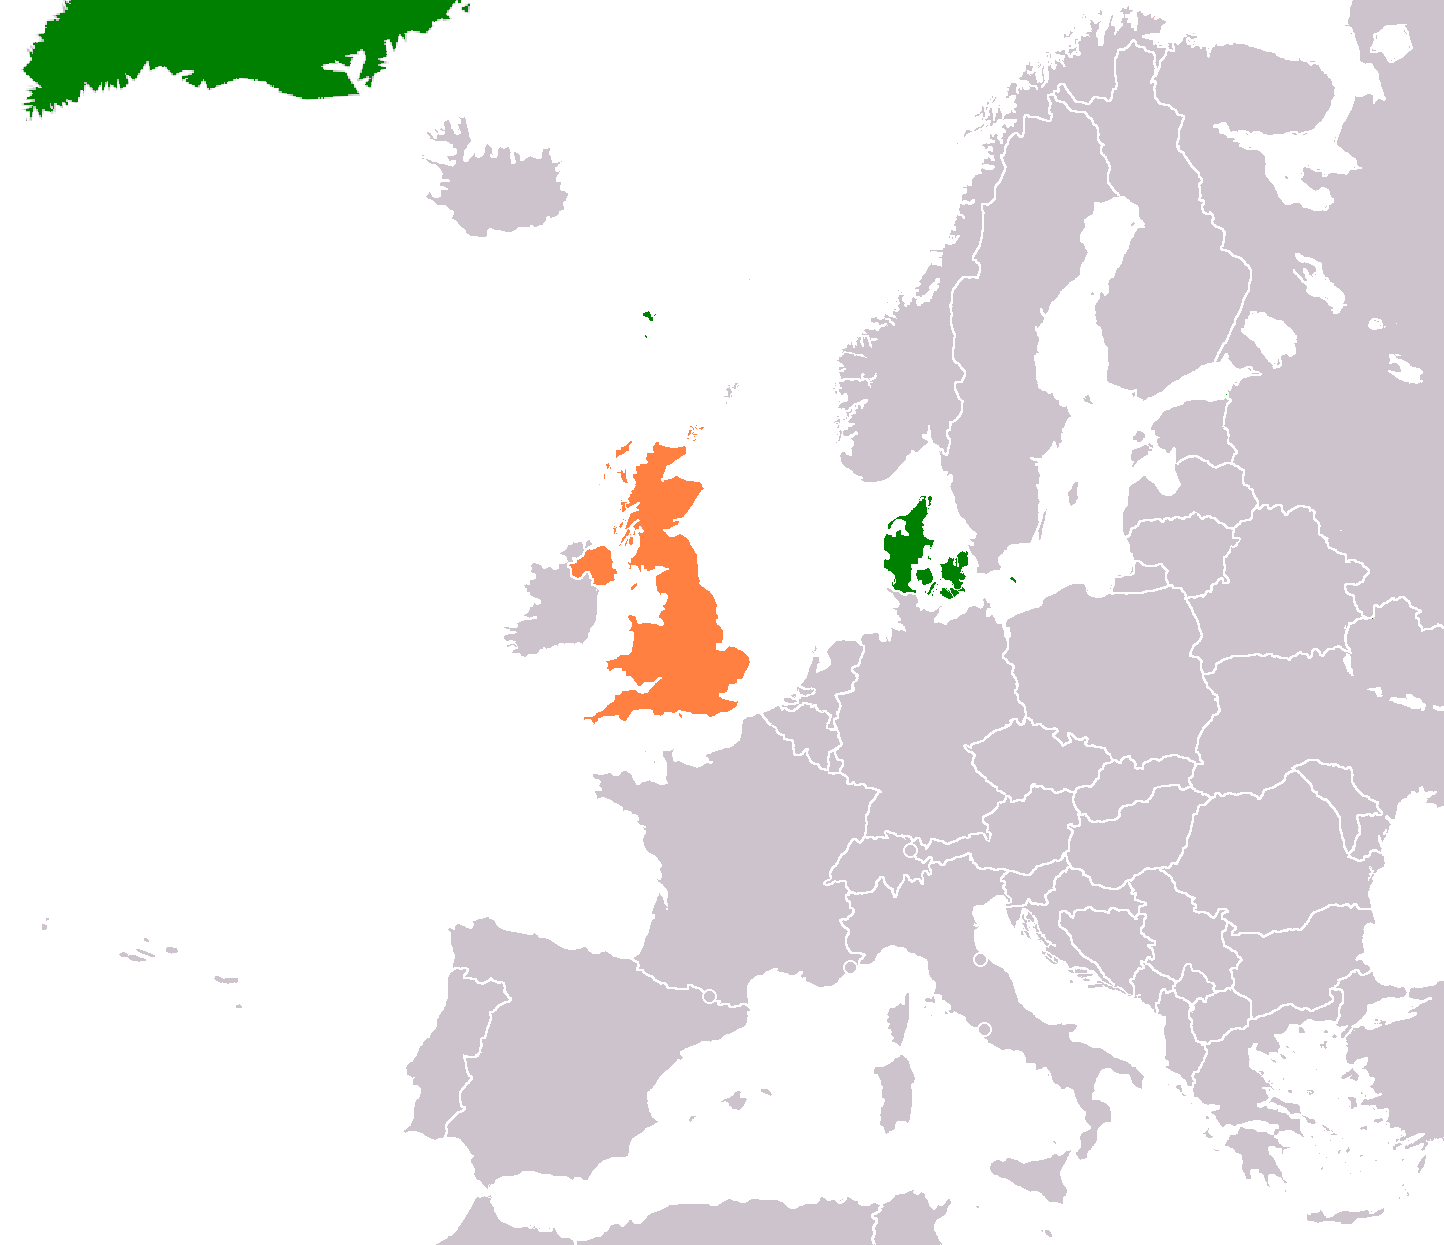 Denmark–United Kingdom relations - Wikipedia on russian federation map, united arab emirates map, republic of mexico map, people's republic of china map, commonwealth of dominica map, republic of turkey map, republic of maldives map, republic of nauru map, republic of cyprus map, khmer kingdom map, bosnia and herzegovina map, republic of moldova map, united kingdom map, state of israel map, republic of croatia map, antigua and barbuda map, republic of korea map, state of new mexico map, republic of kenya map,